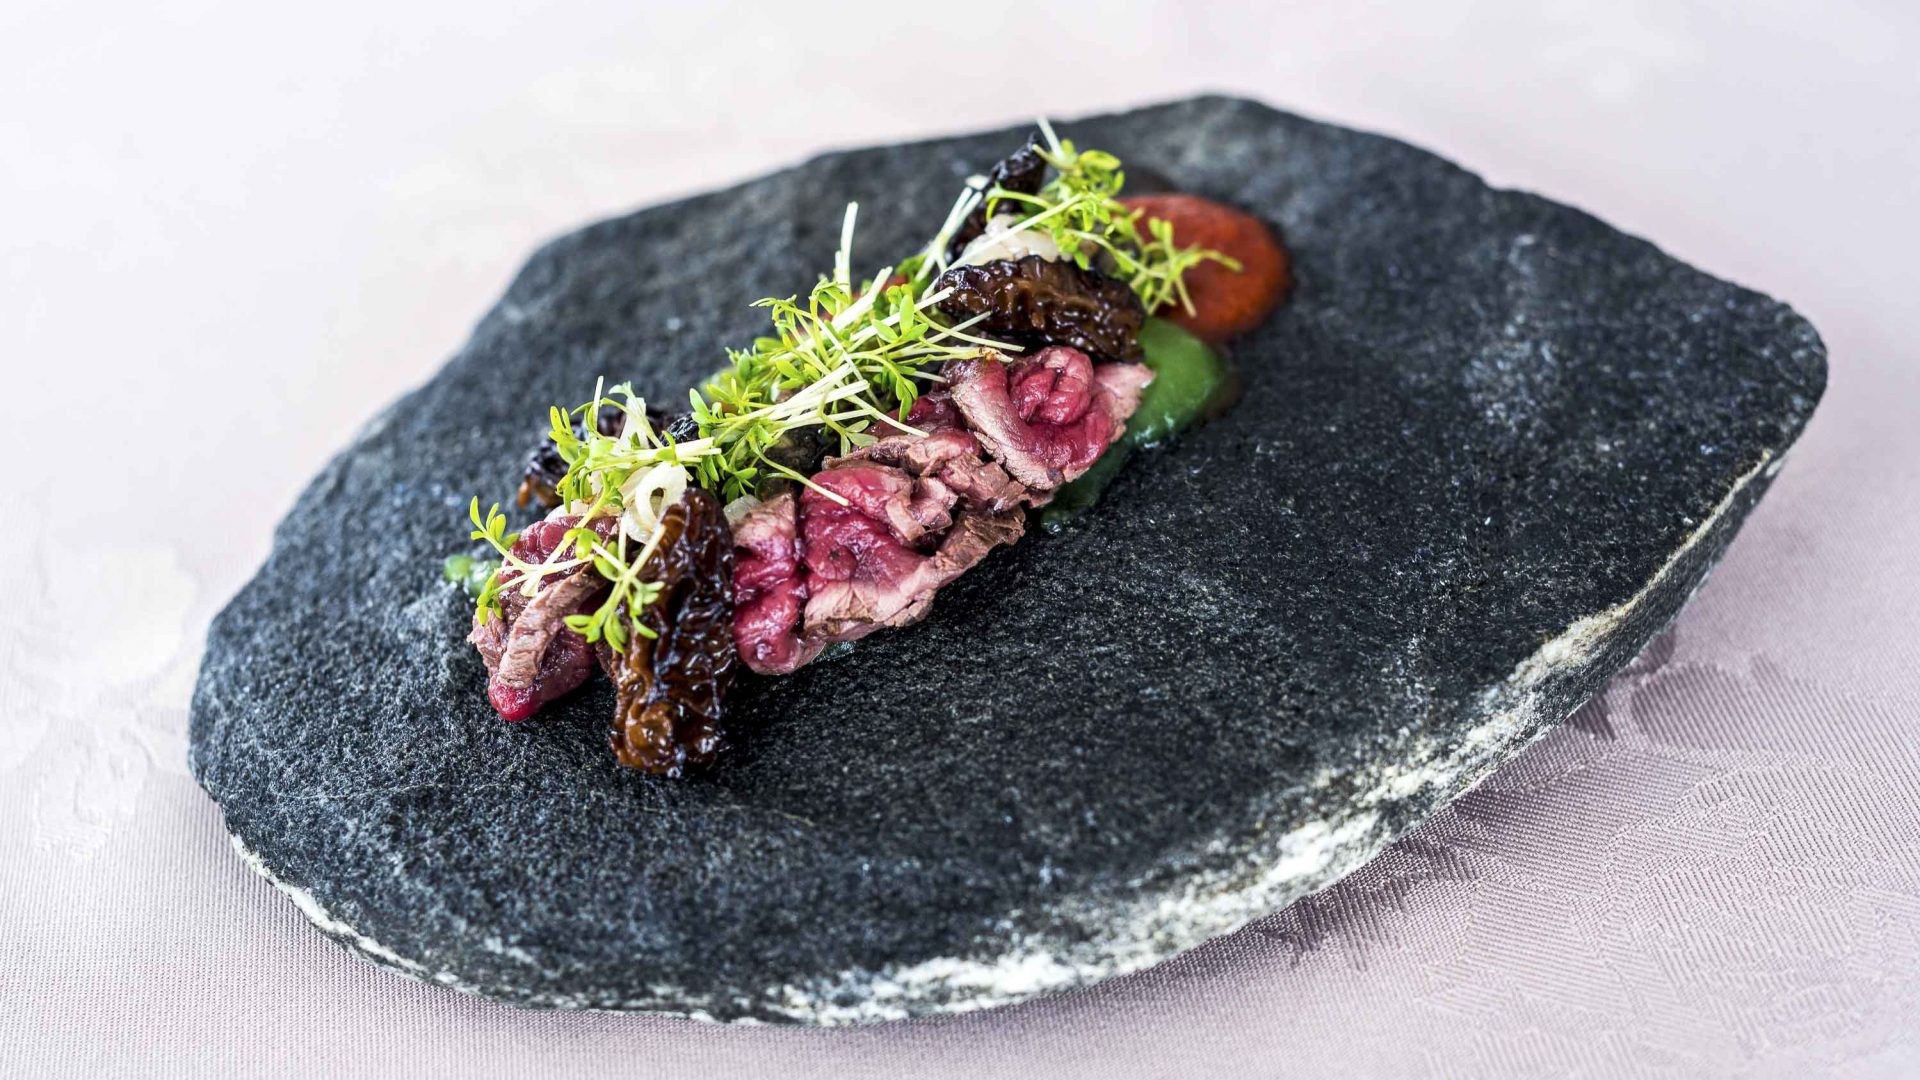 Dried aged reindeer (18-20 days) with a puree of watercress, kimchi, shallots and fried morels.